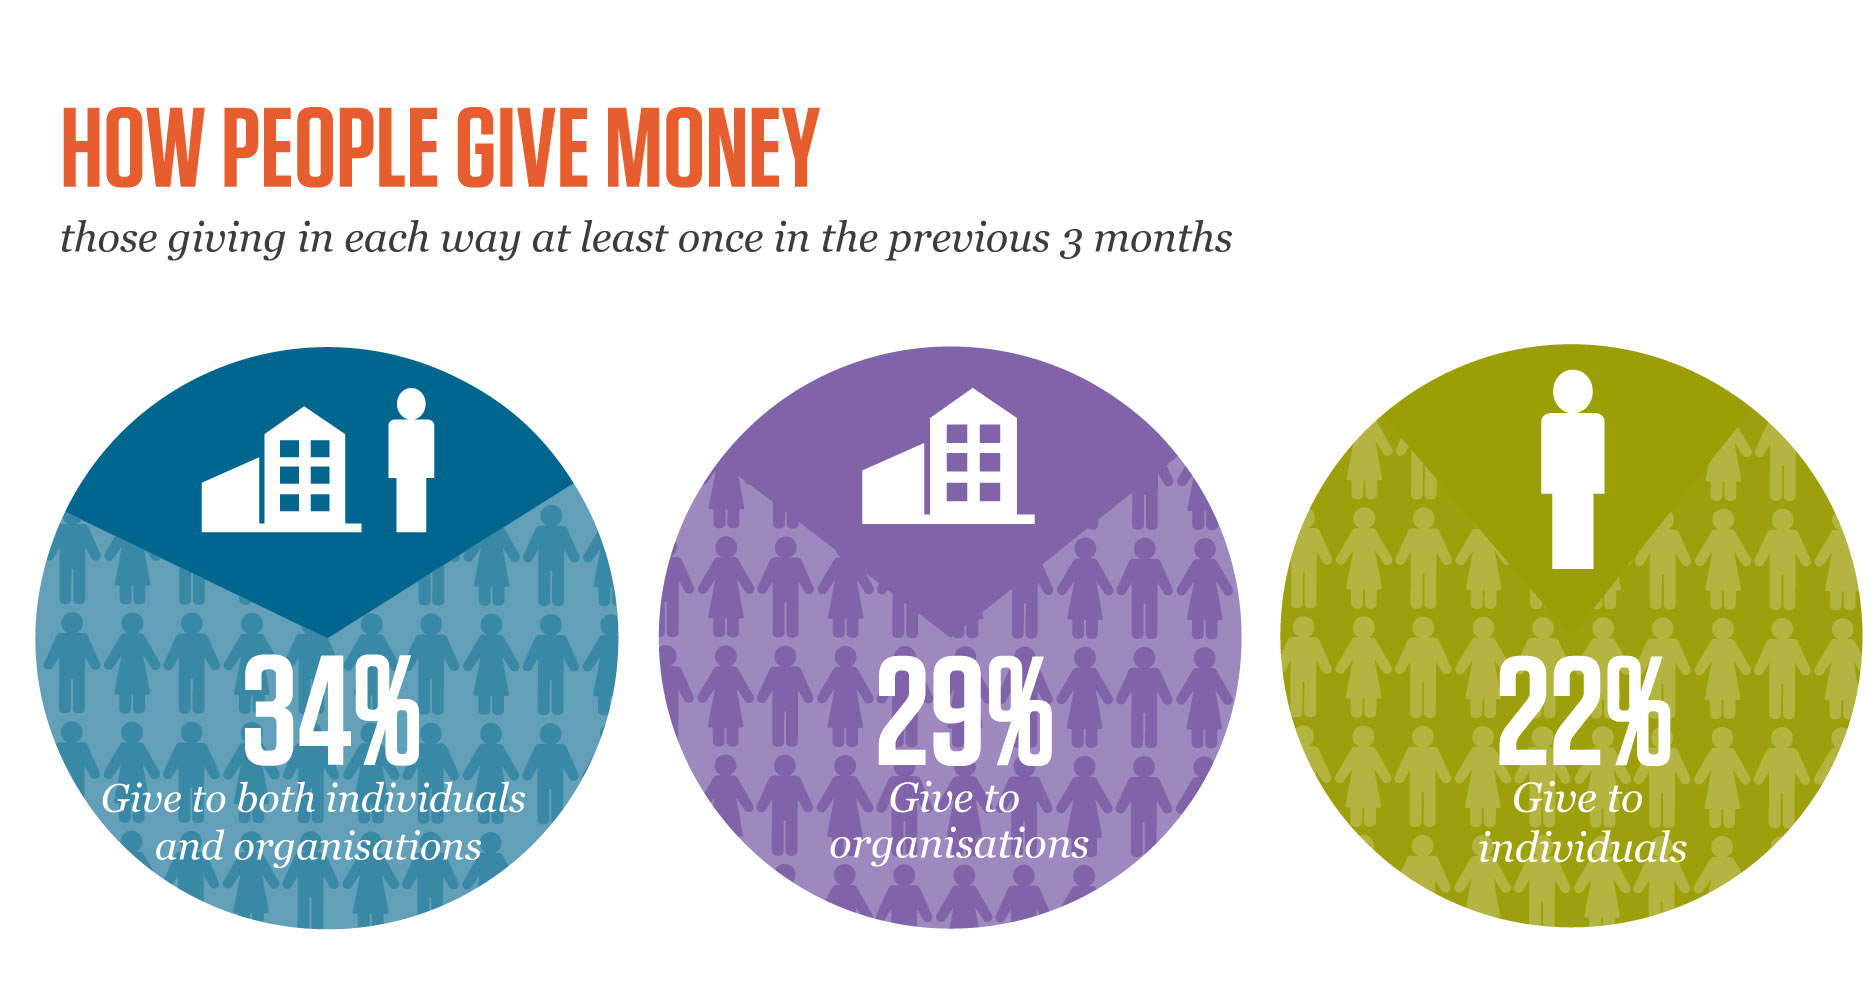 HOW PEOPLE GIVE MONEY Give to organisations 29% 22% Give to individuals 34% Give to both individuals and organisations those giving in each way at least once in the previous 3 months those giving in each way at least once in the previous 3 months